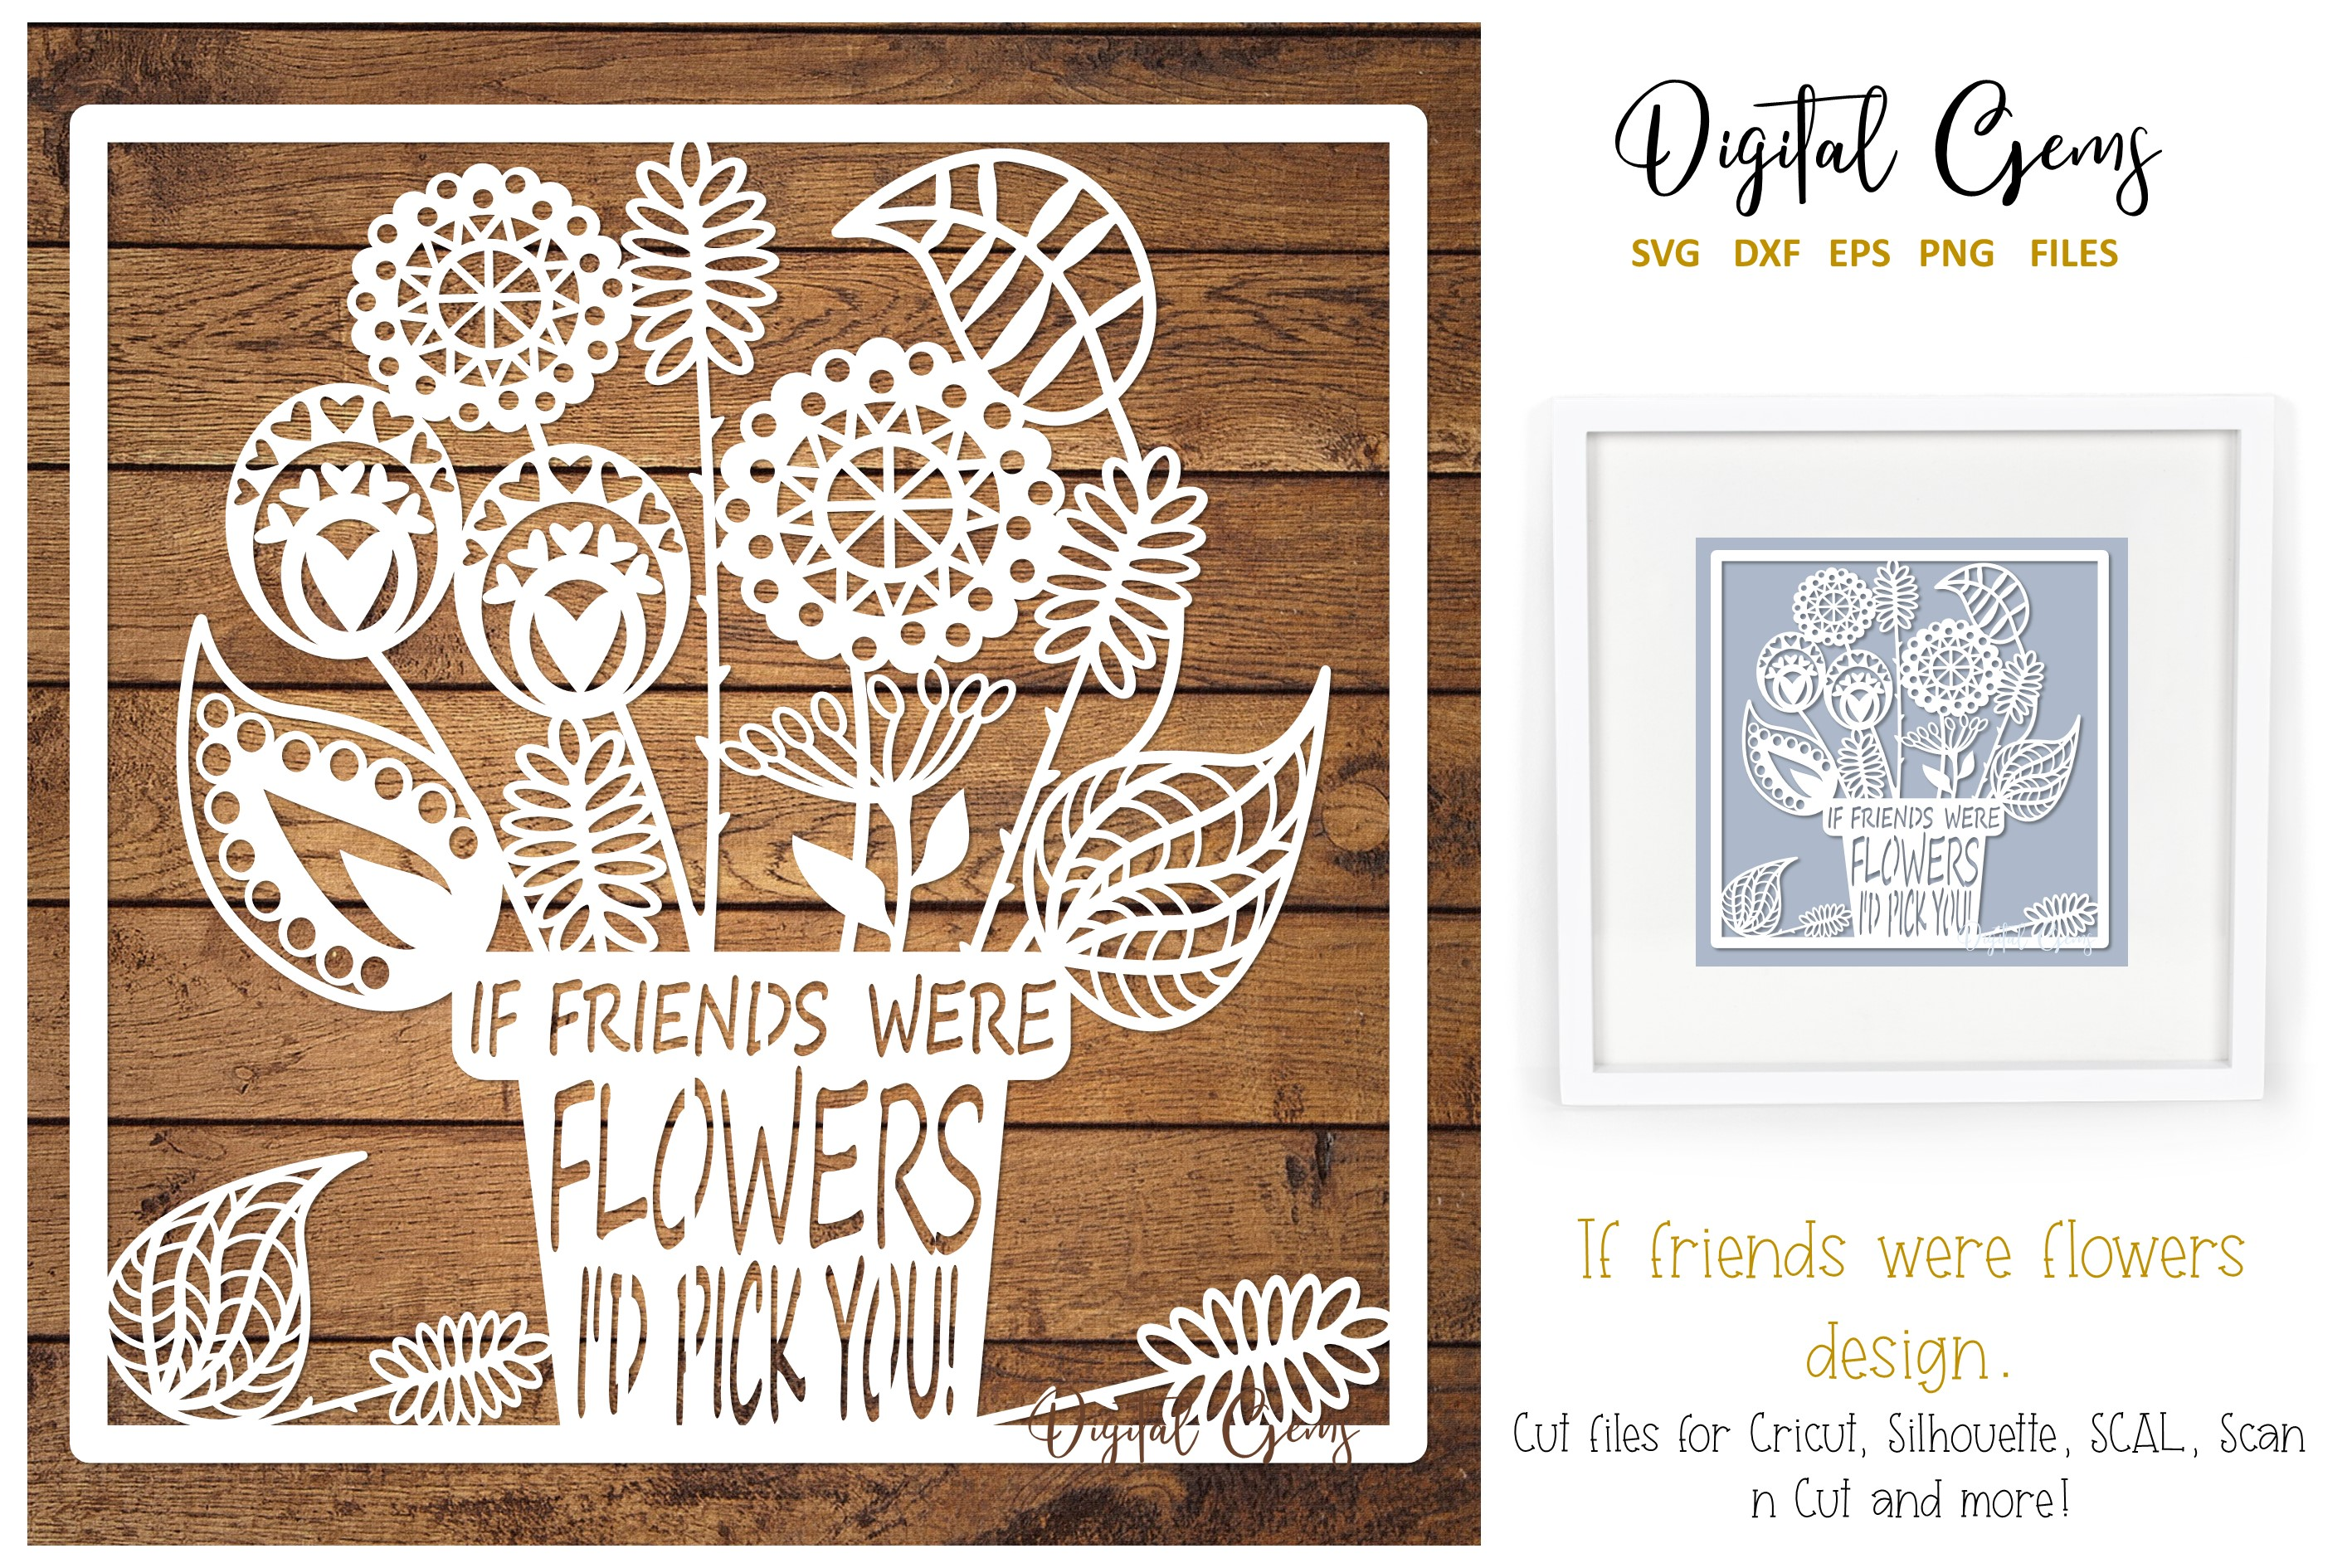 Download Free If Friends Were Flowers Design Graphic By Digital Gems for Cricut Explore, Silhouette and other cutting machines.